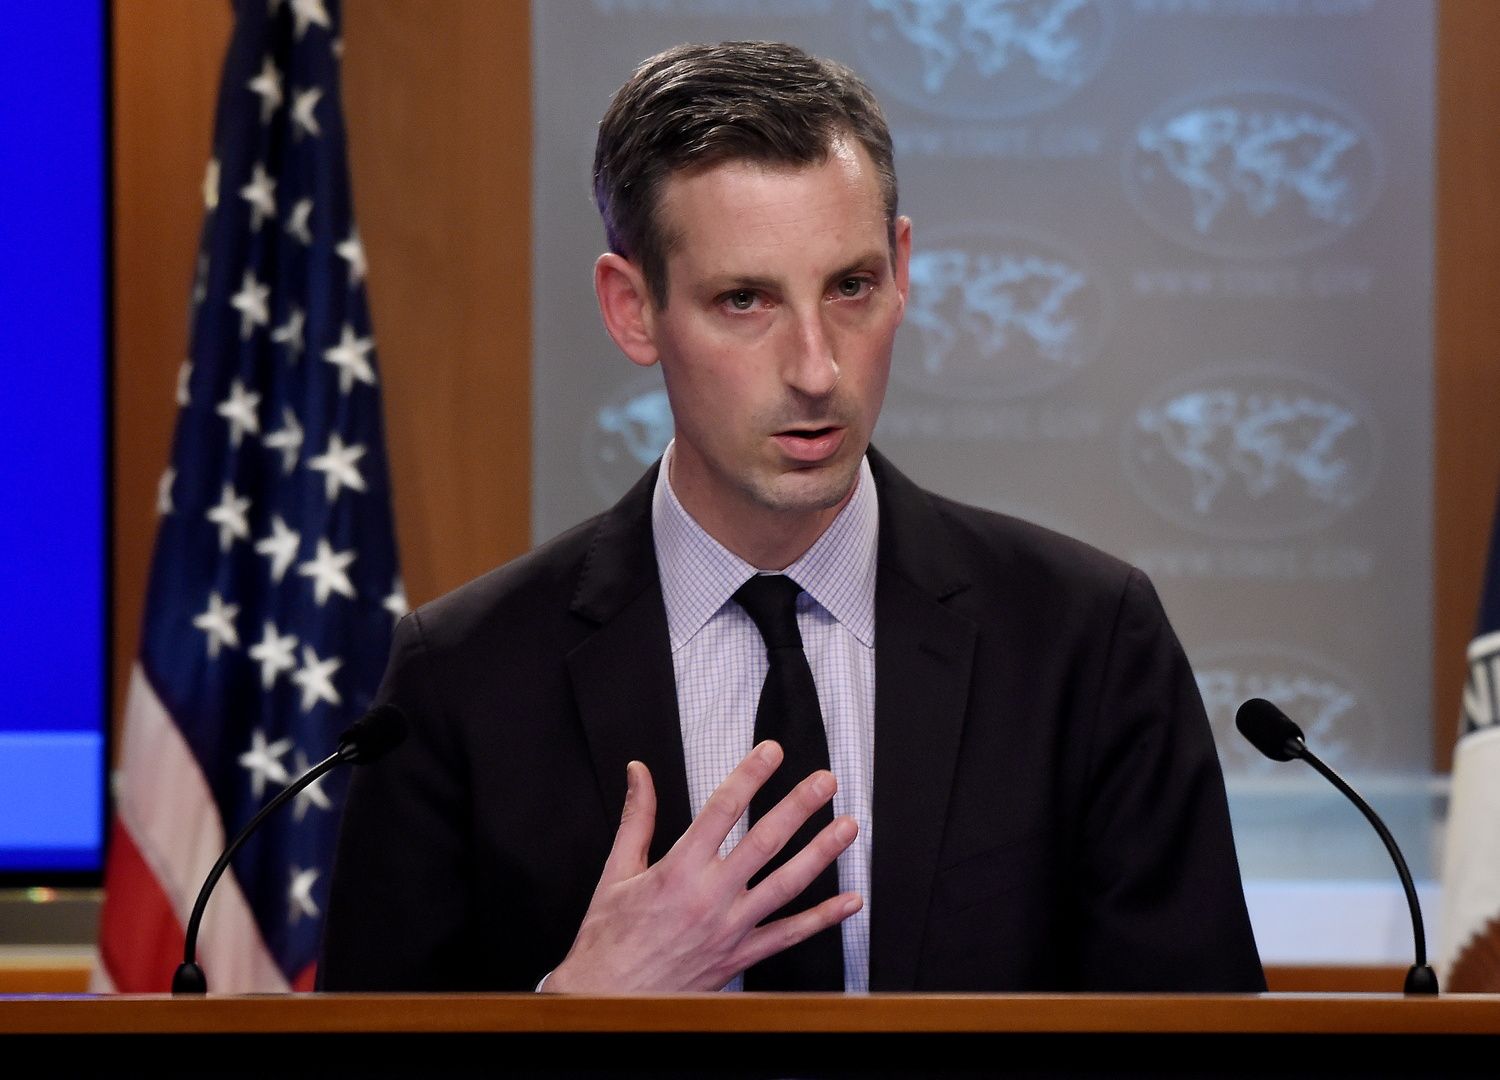 Washington is concerned about the lack of agreement on elections in Somalia